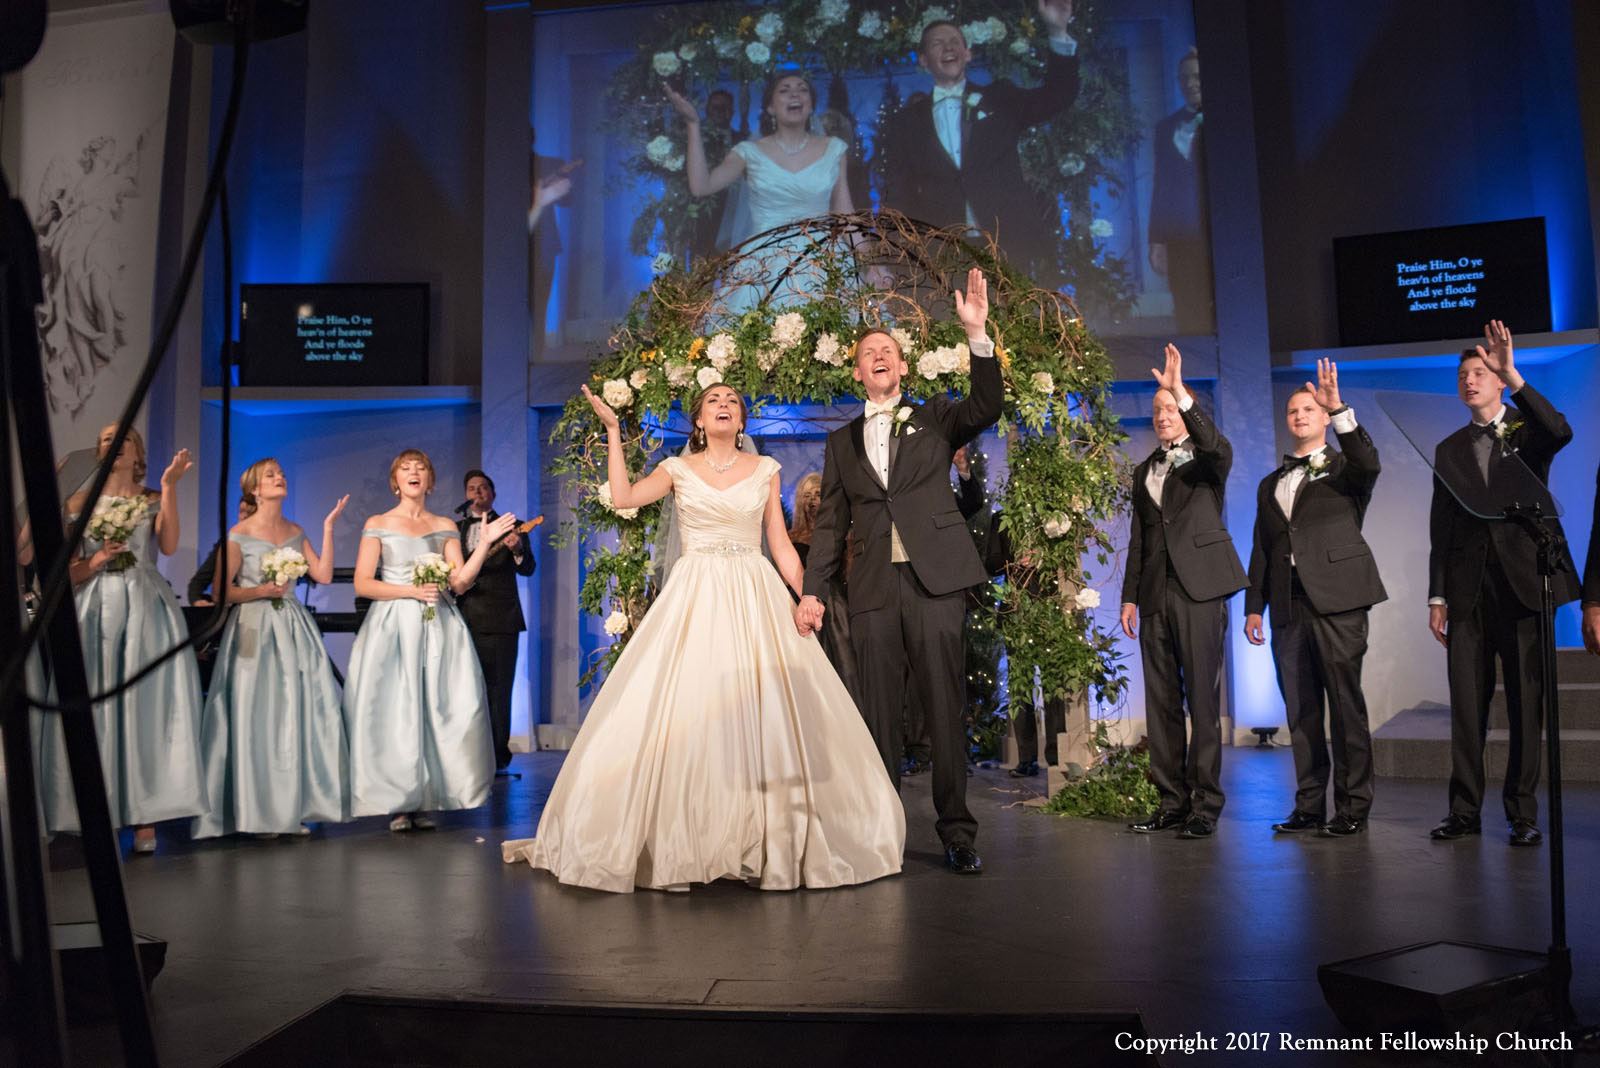 Remnant-Fellowship-Purdy-Wolgemuth-Covenant-Wedding-Ceremony-03